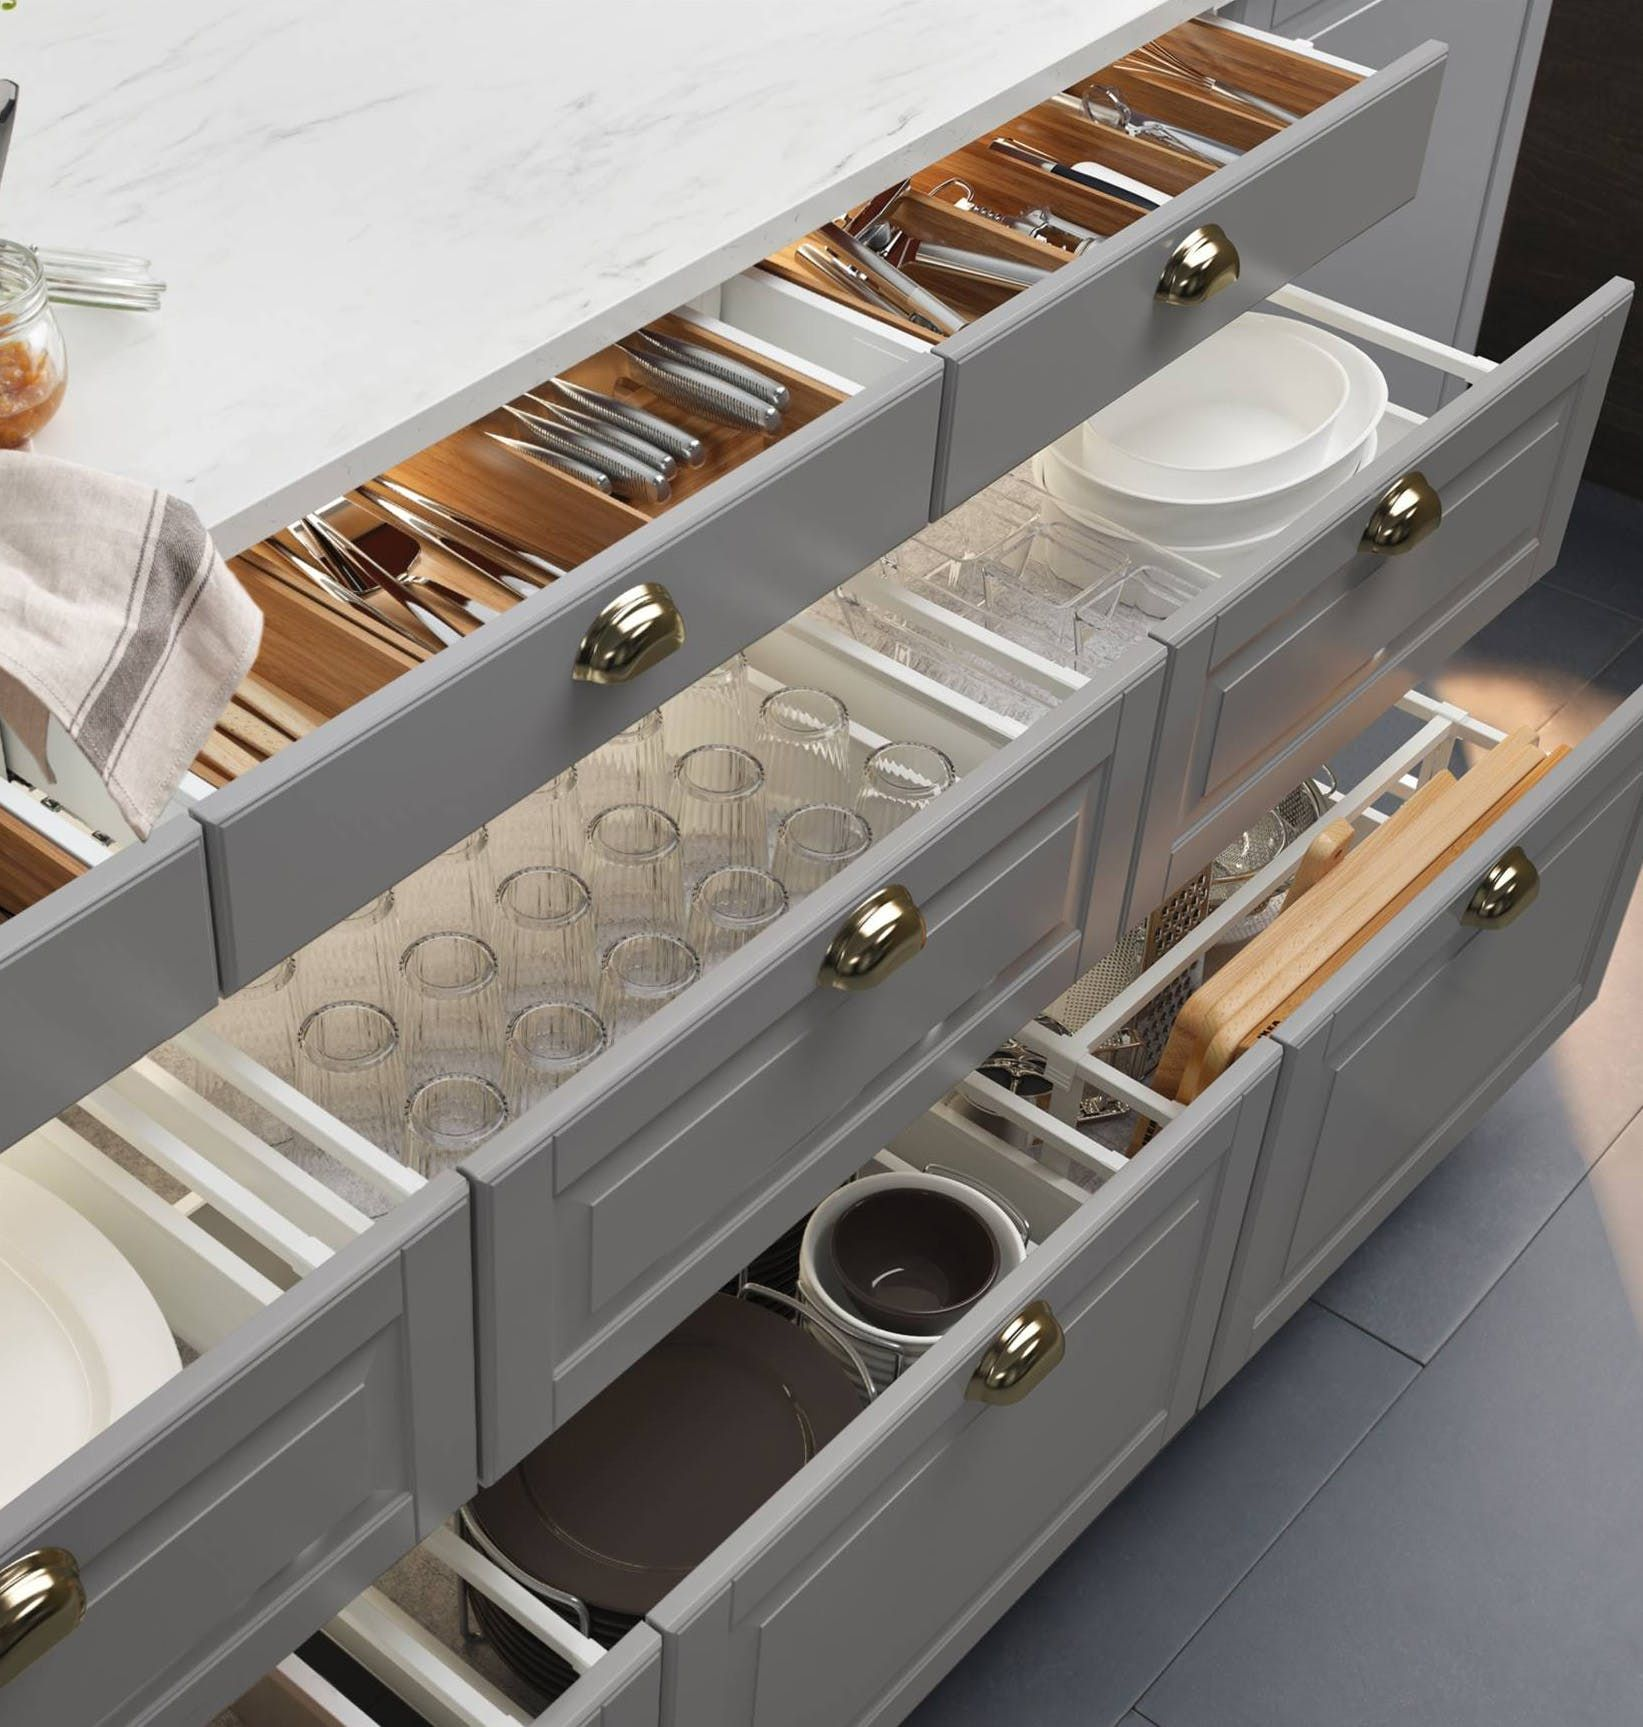 4 Steps on How to Organize Your Kitchen Cabinet Drawers